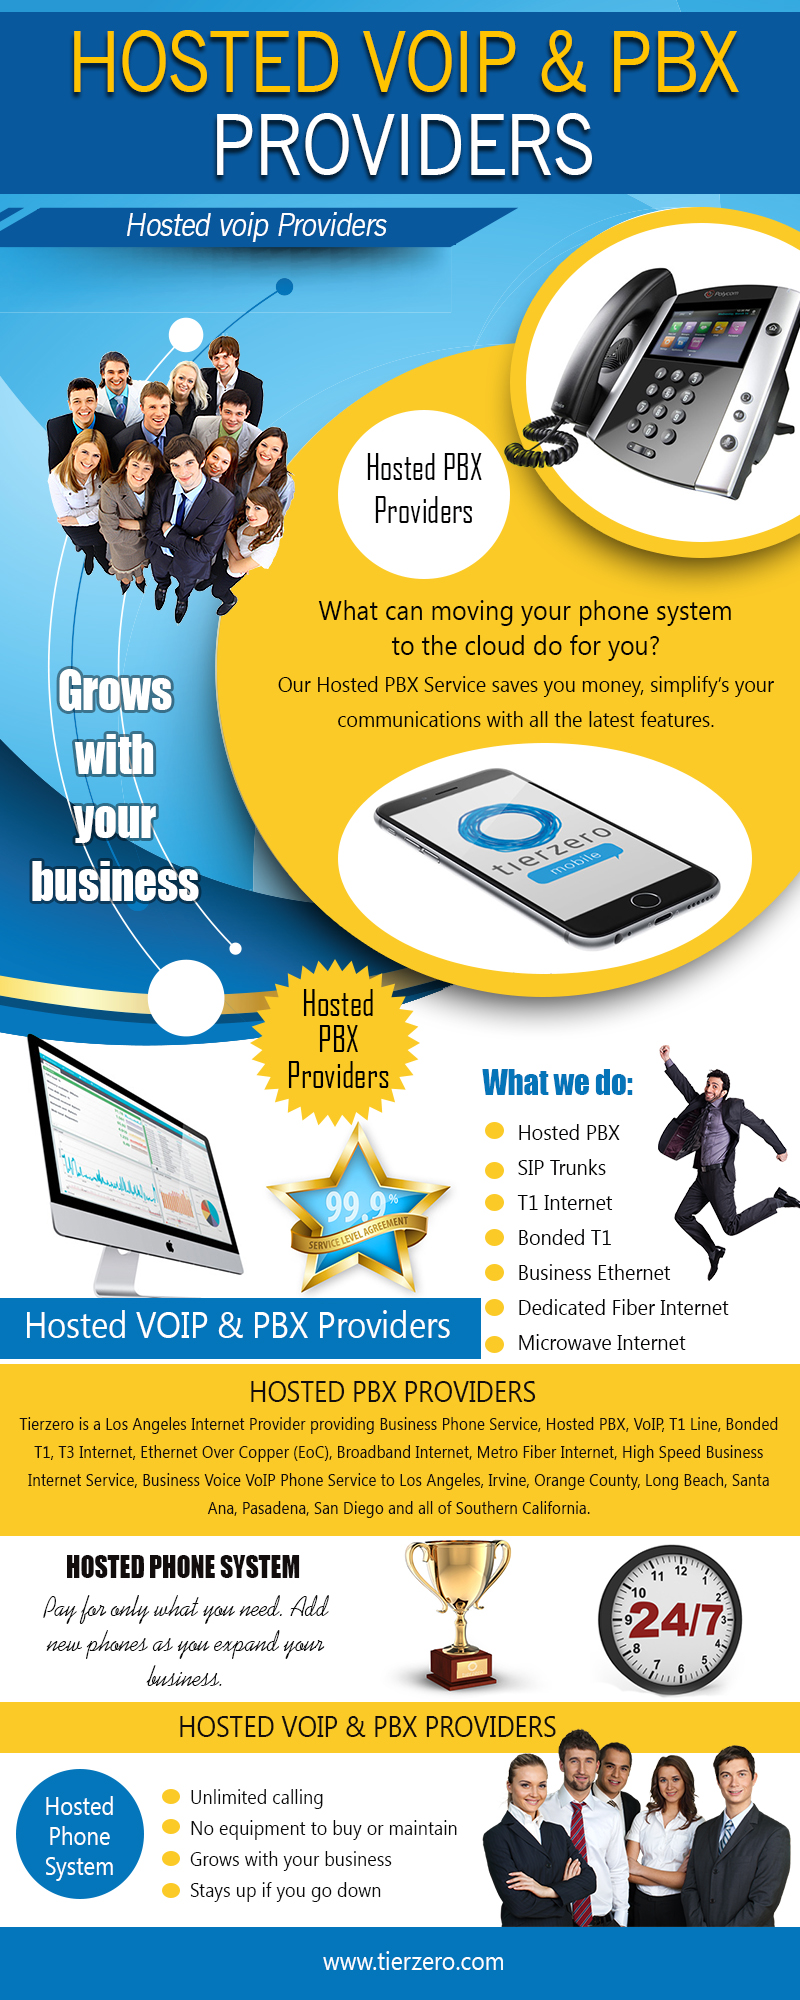 Hosted voip & pbx providers